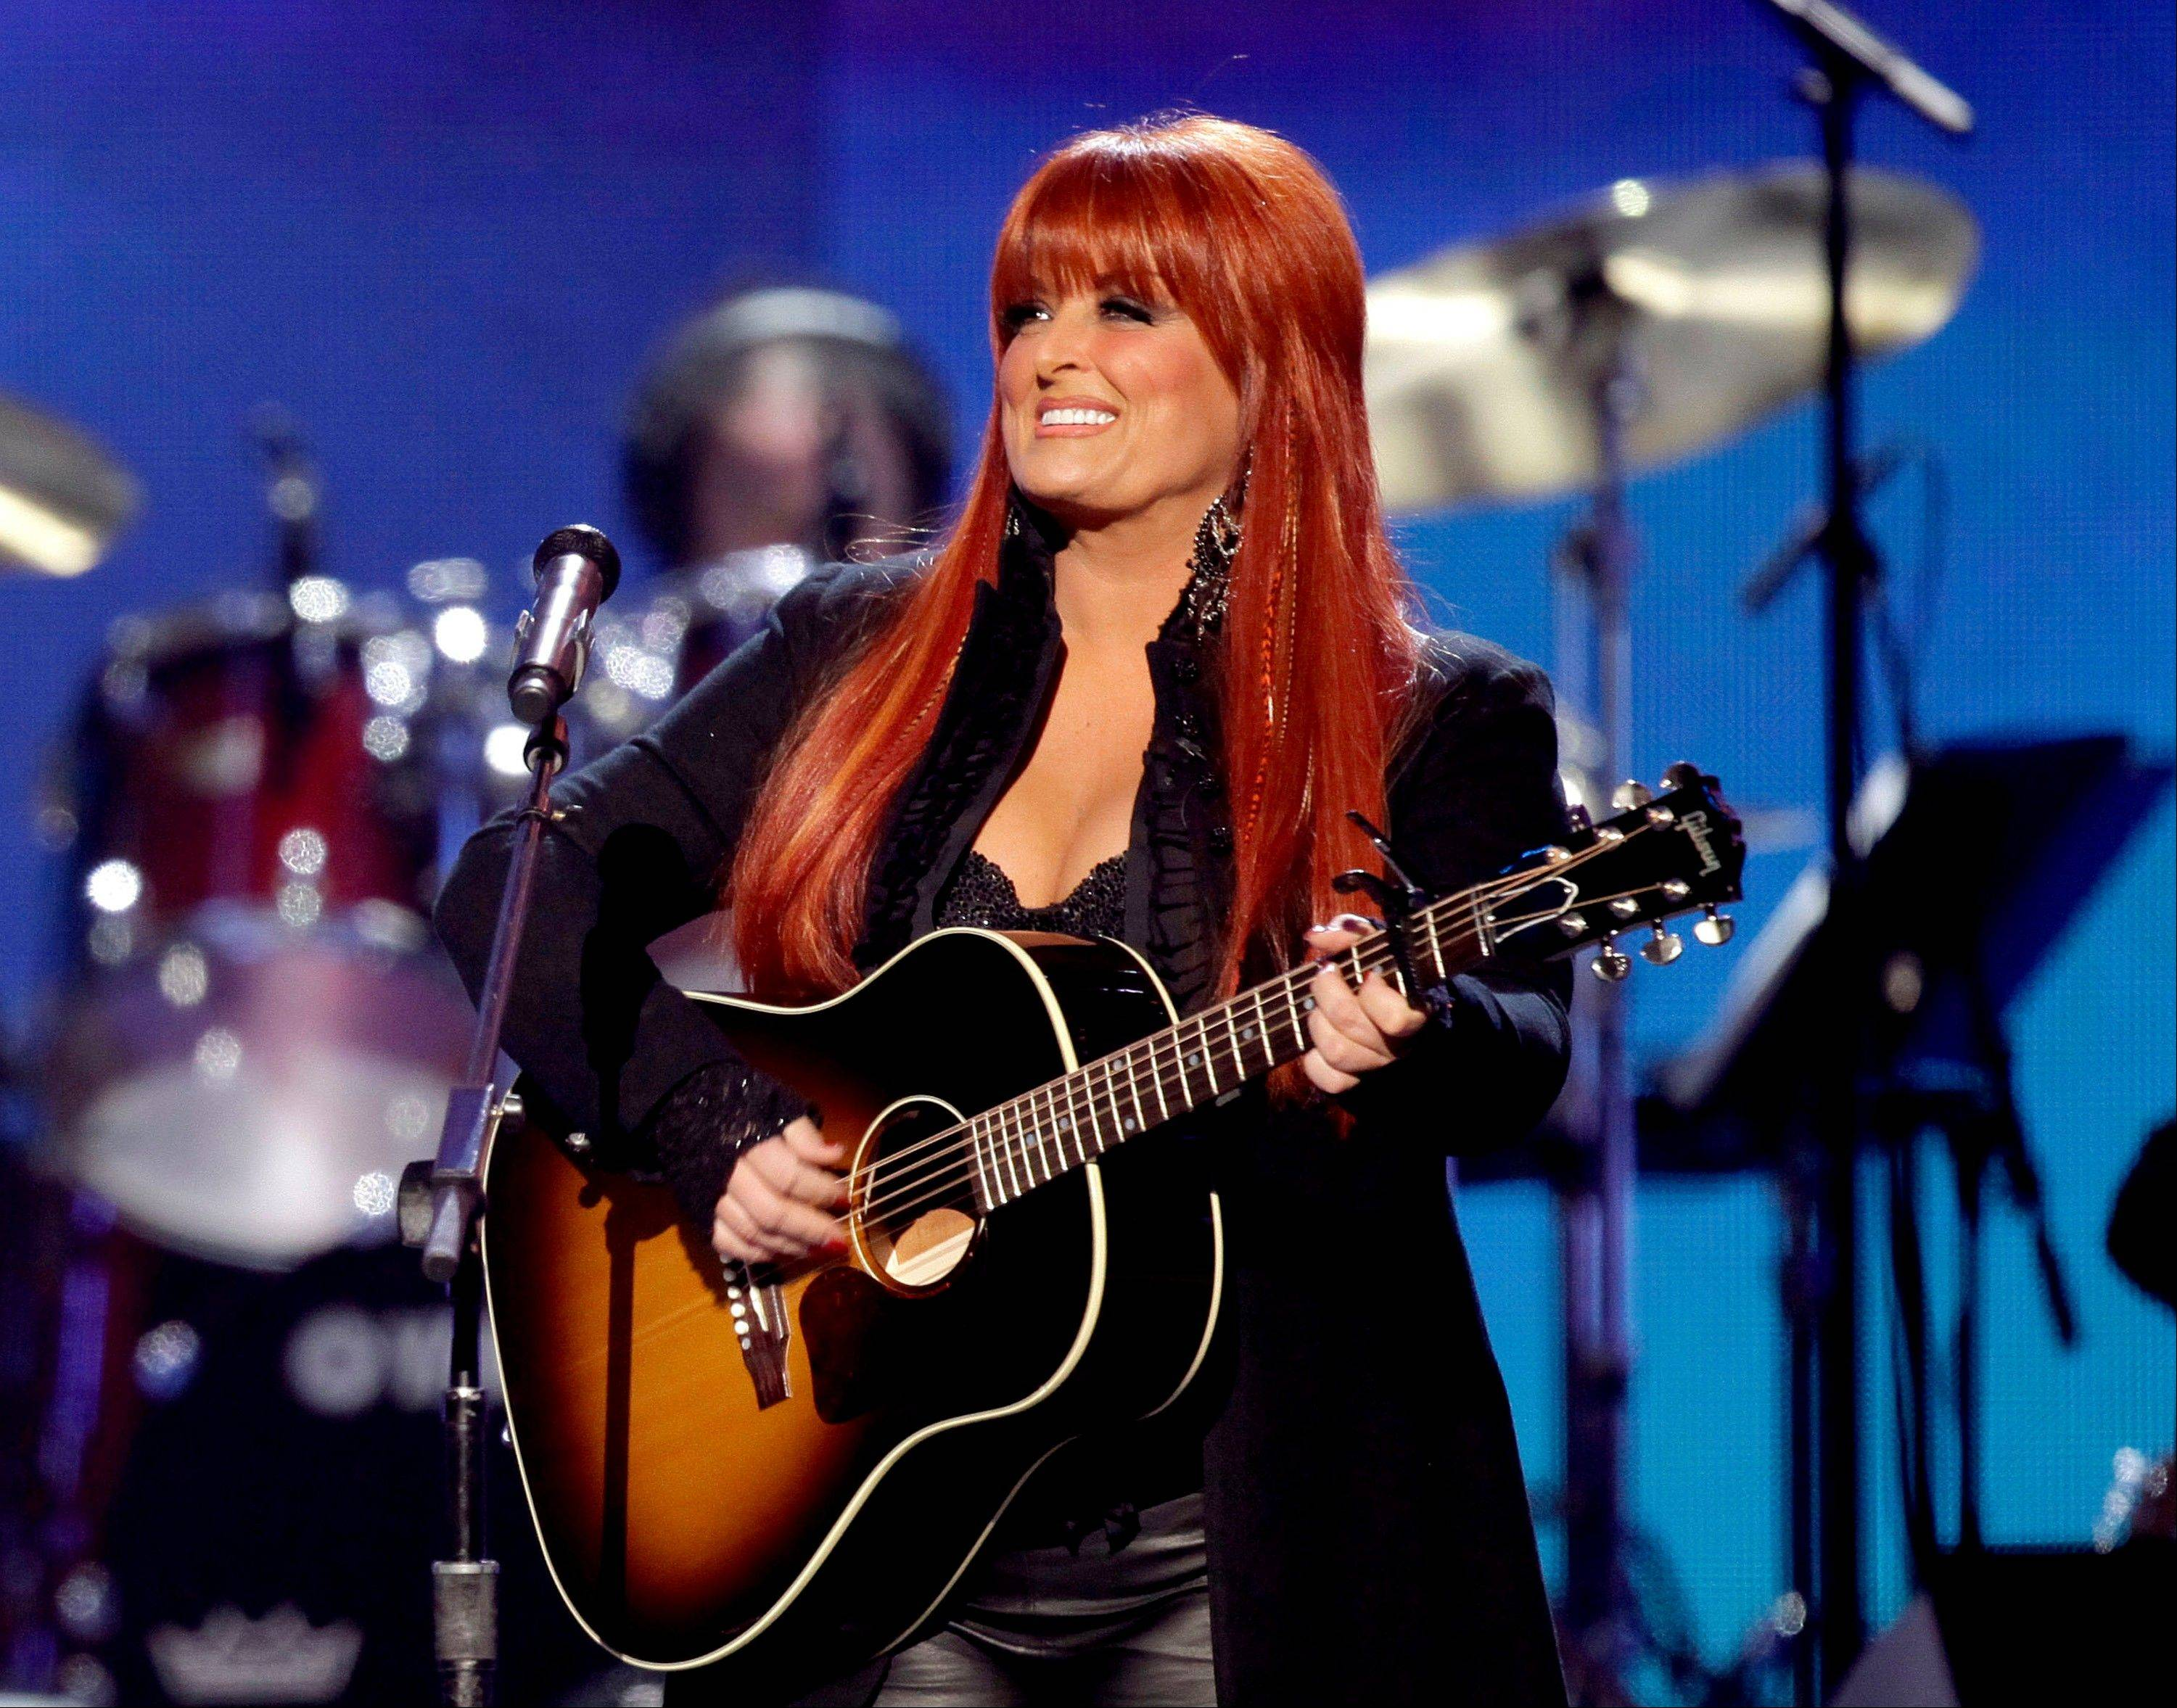 This April 4, 2011 file photo shows country winger Wynonna Judd from The Judds, performing at the Girls' Night Out: Superstar Women of Country in Las Vegas. Judd says she is postponing scheduled concerts in Canada next week after her husband was hurt in a motorcycling accident Saturday in South Dakota.